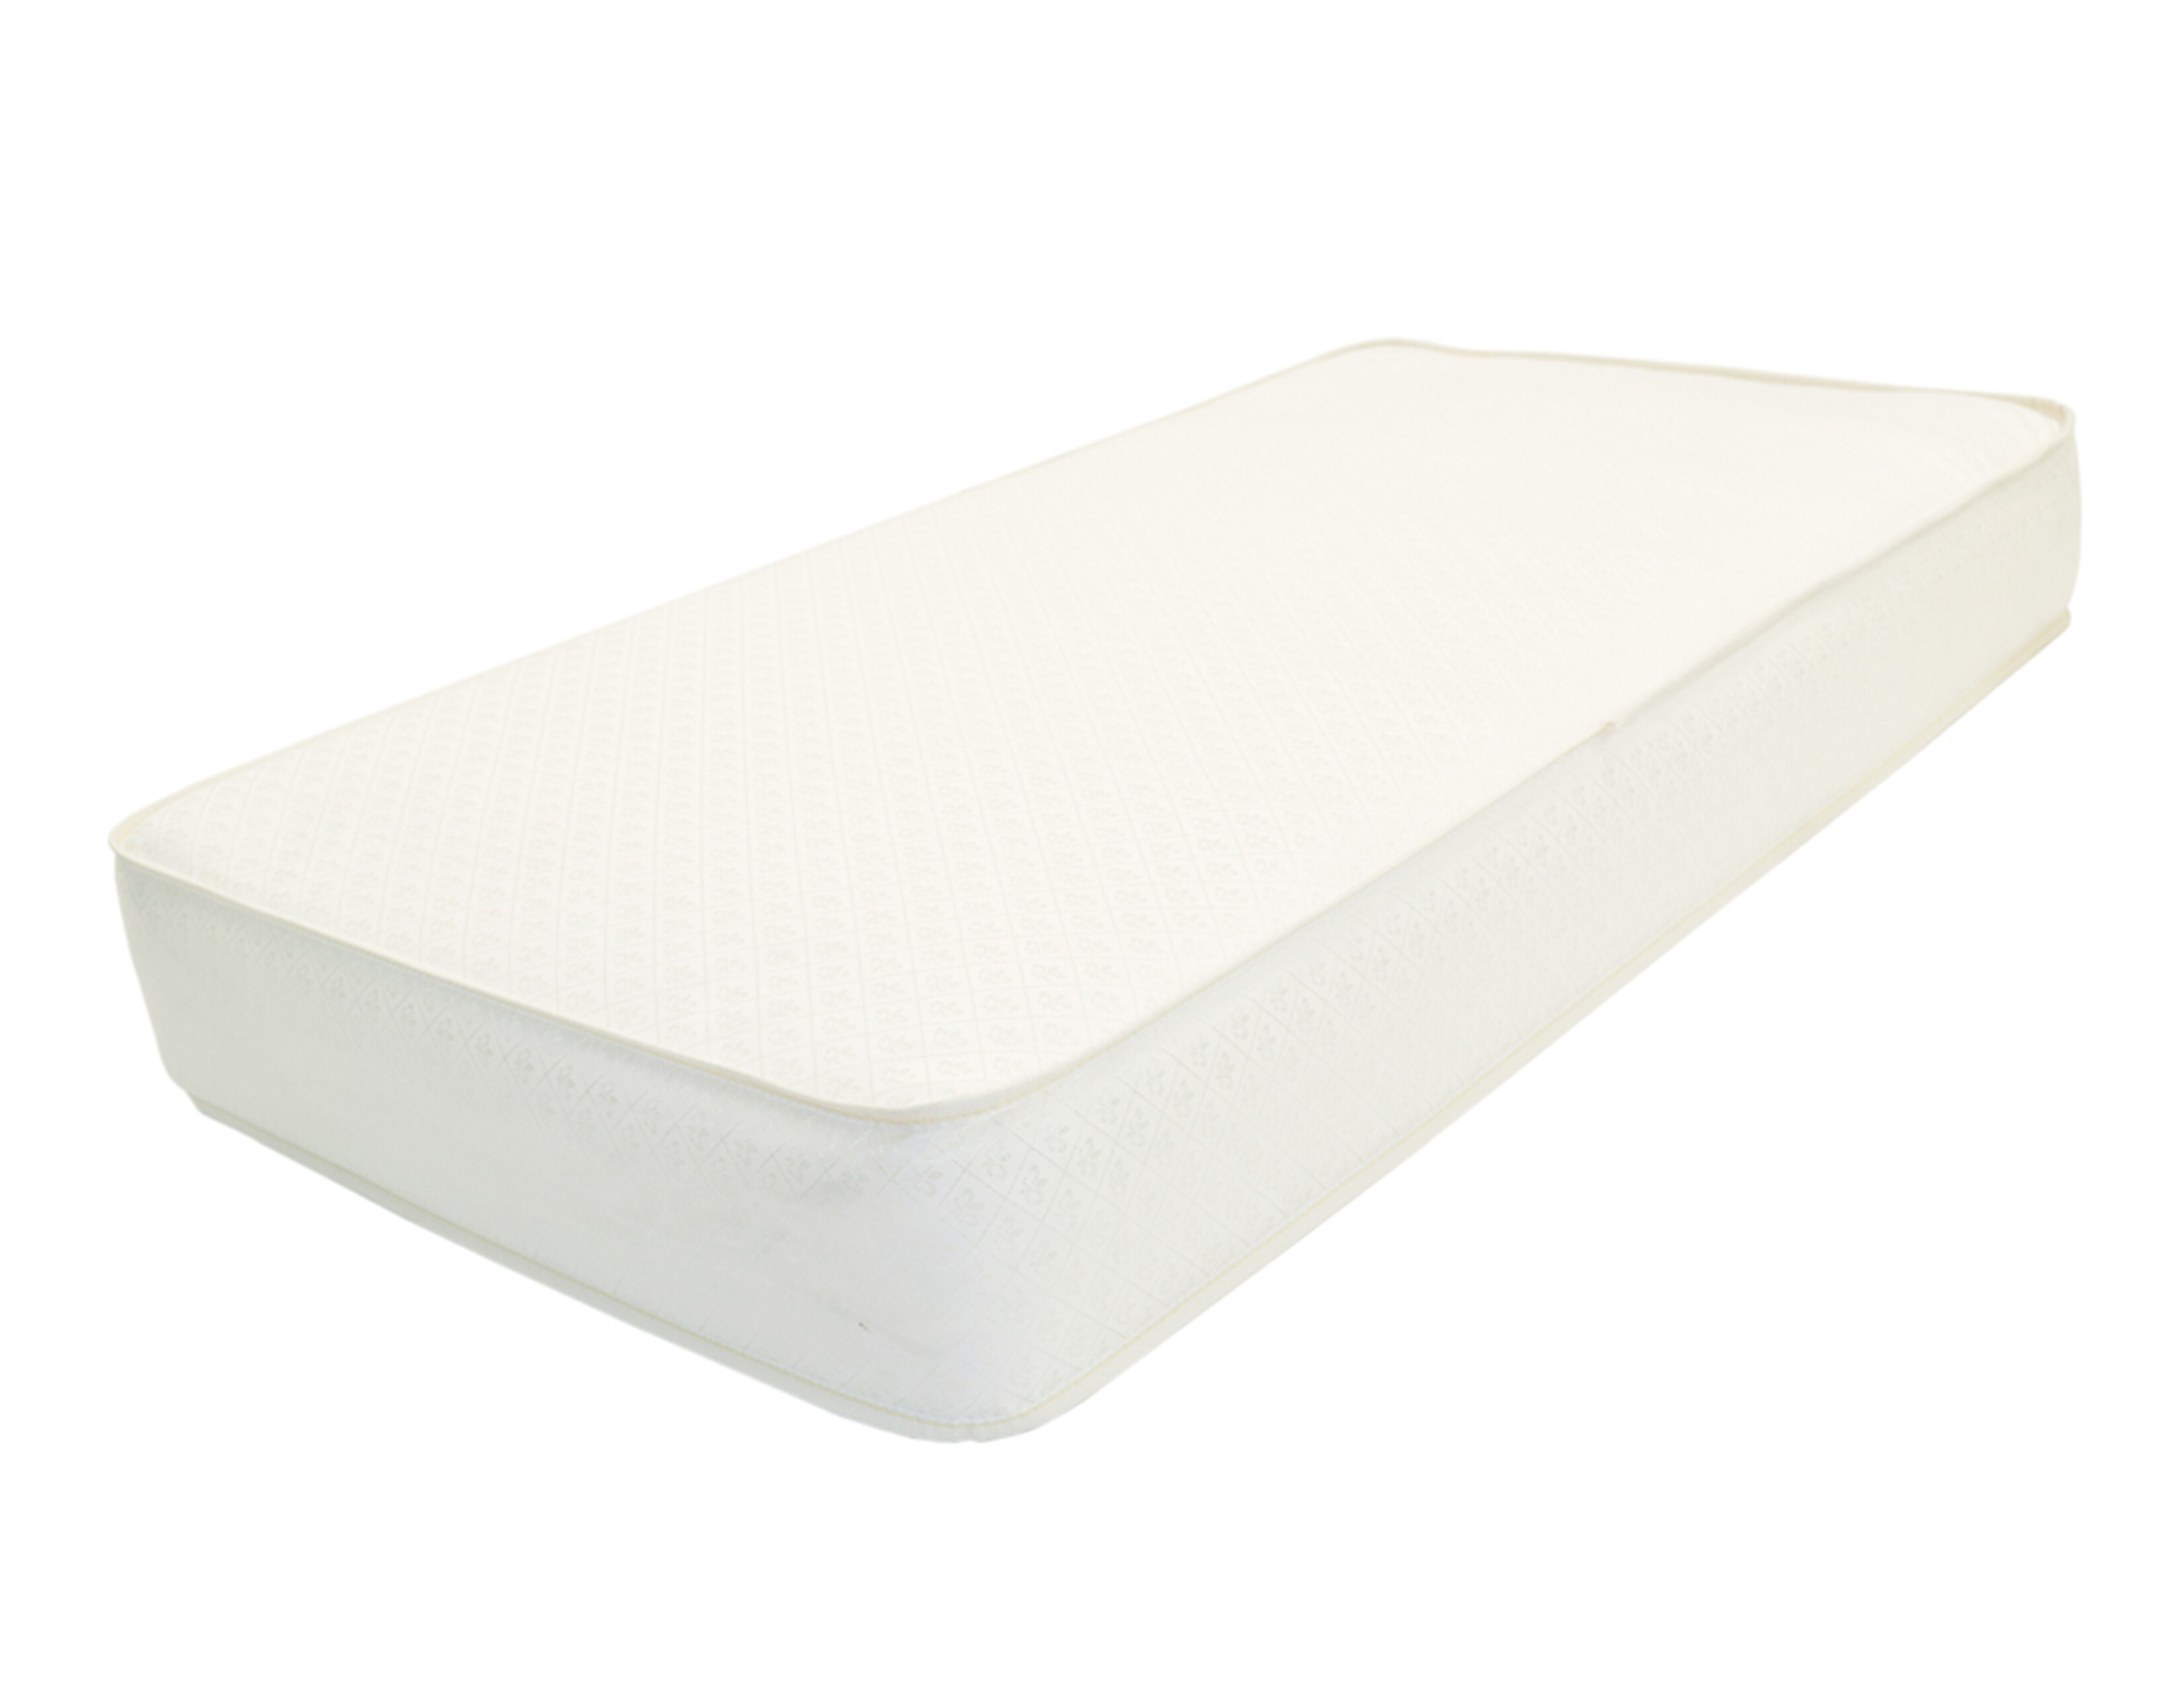 l.a. baby 2 in 1 memory soy foam core crib mattress--extra firm with